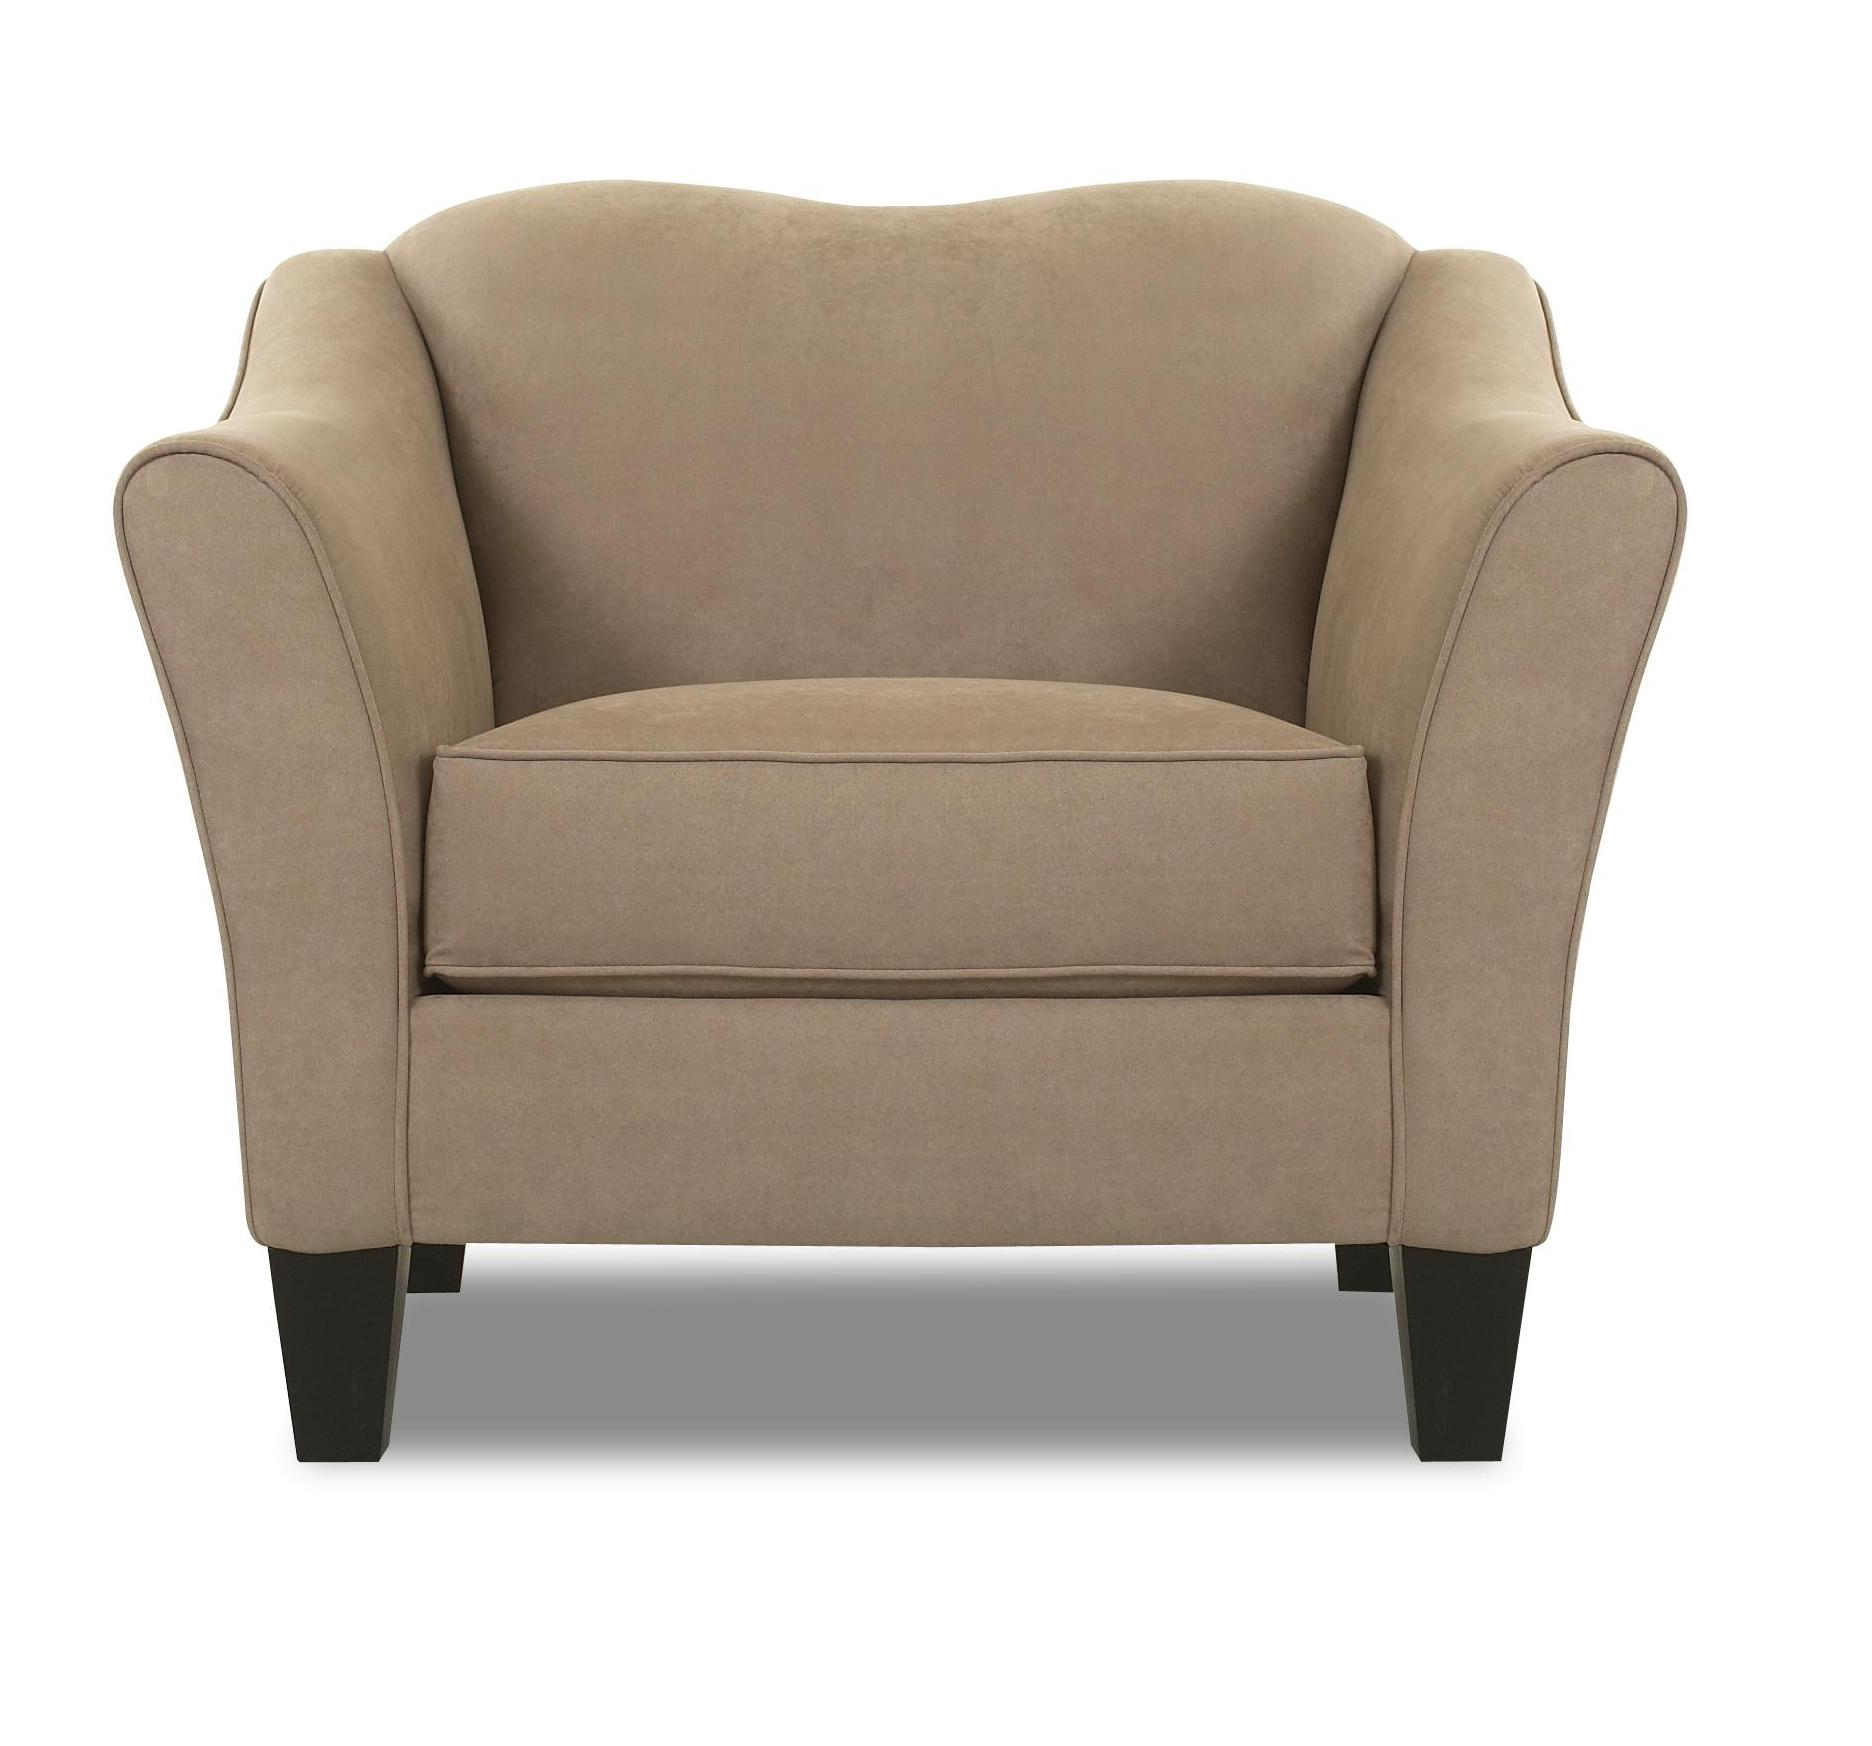 Klaussner Kris Upholstered Stationary Chair - Item Number: B98900C